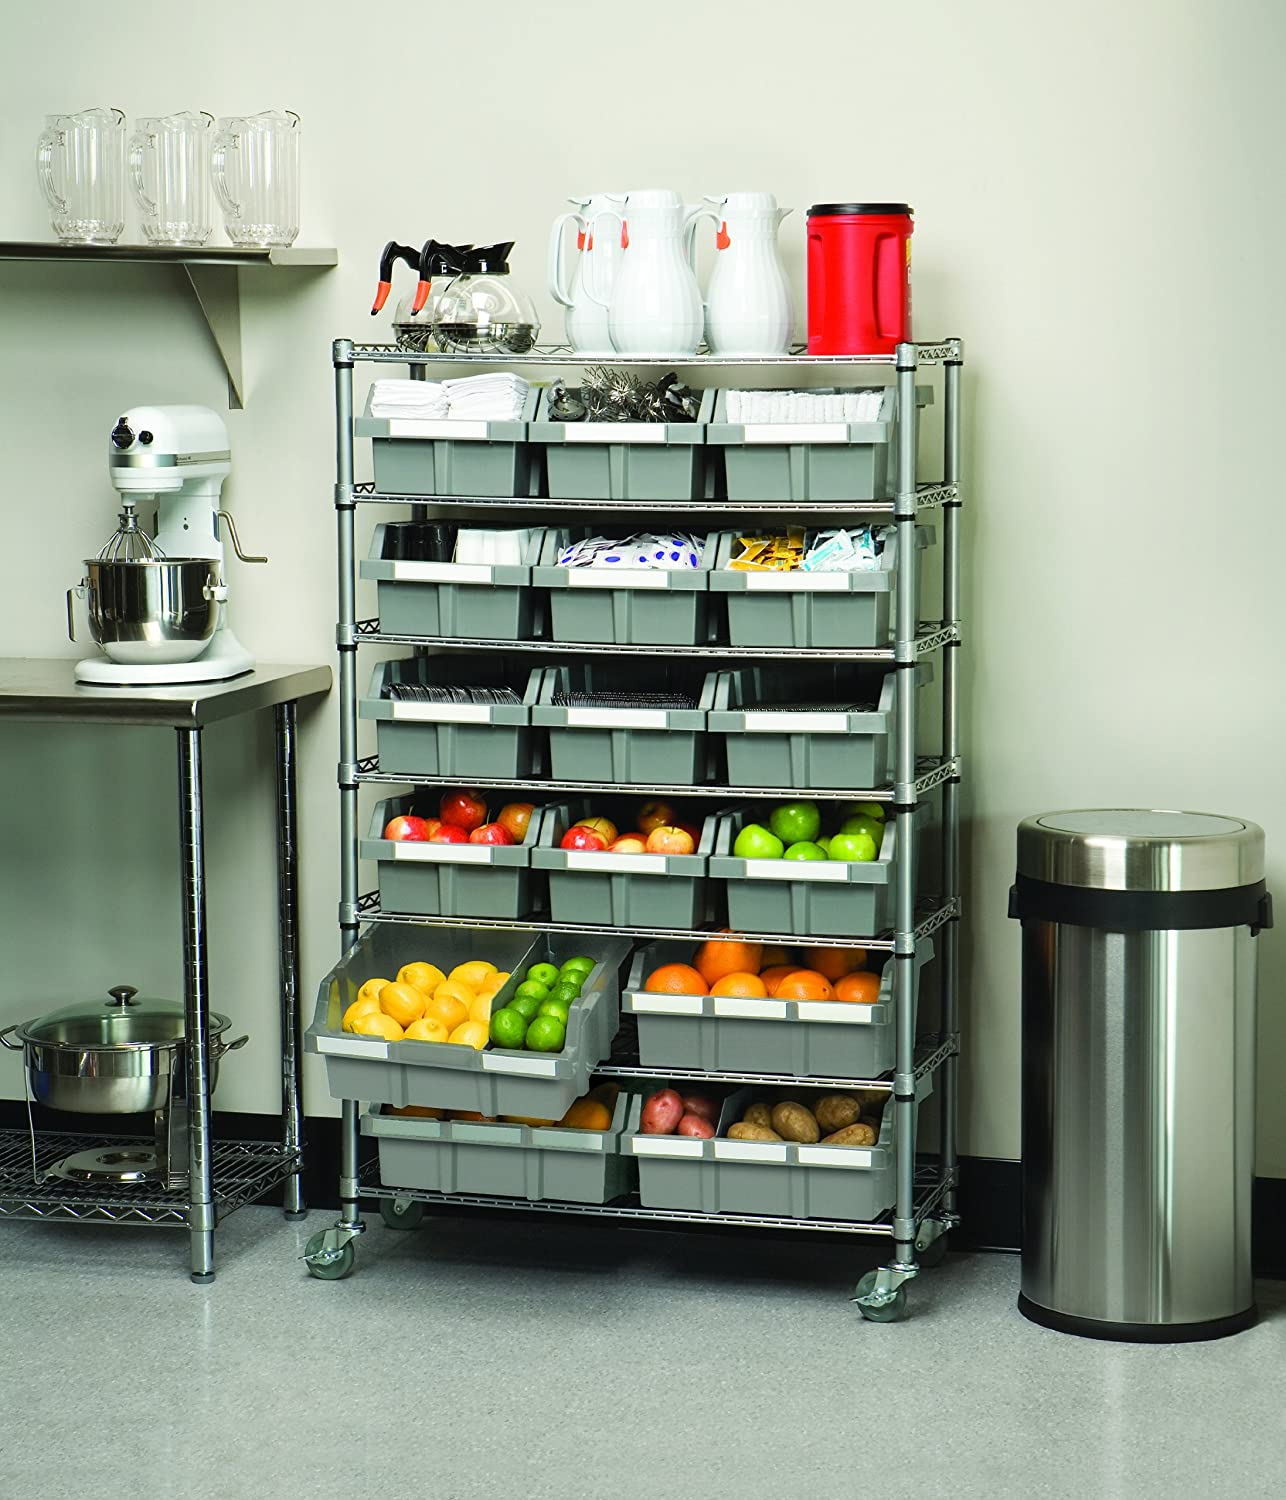 Industrial Kitchen Shelving: Rolling Bins, Baskets, Carts & Containers